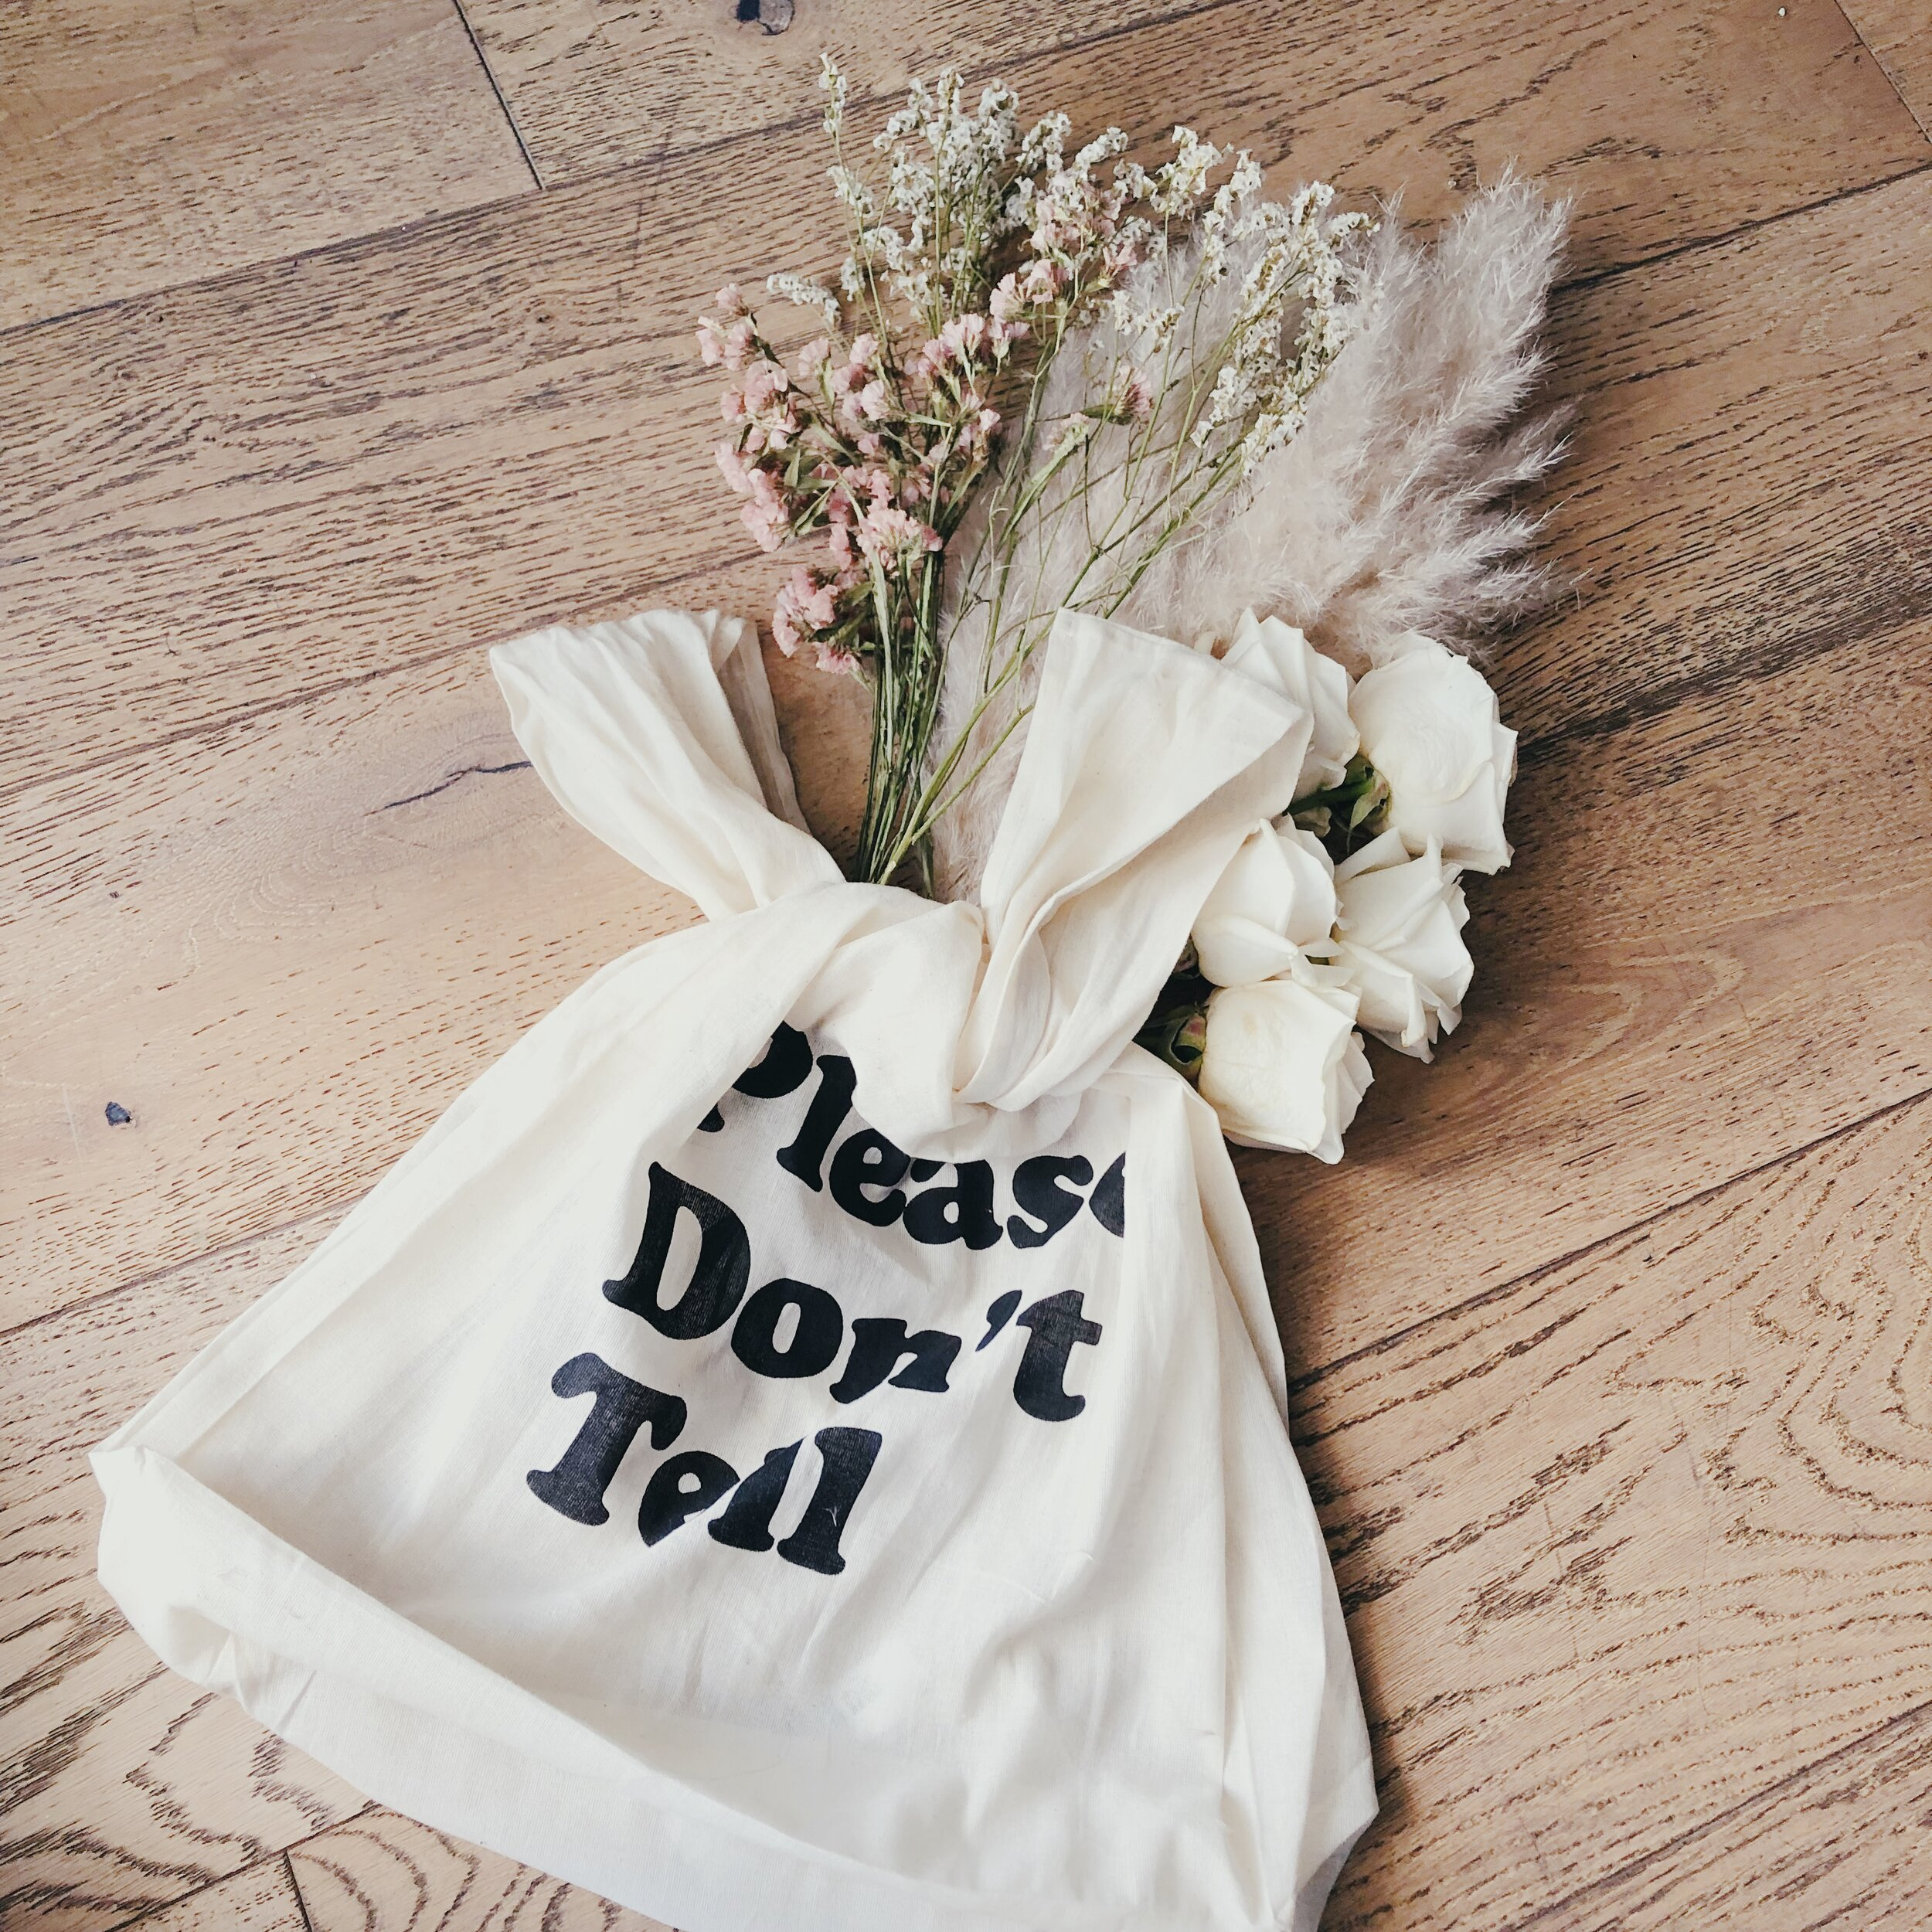 In Love - Our Reusable Bag (Free With Purchase) Carries 50 pounds of groceries! - True Story!